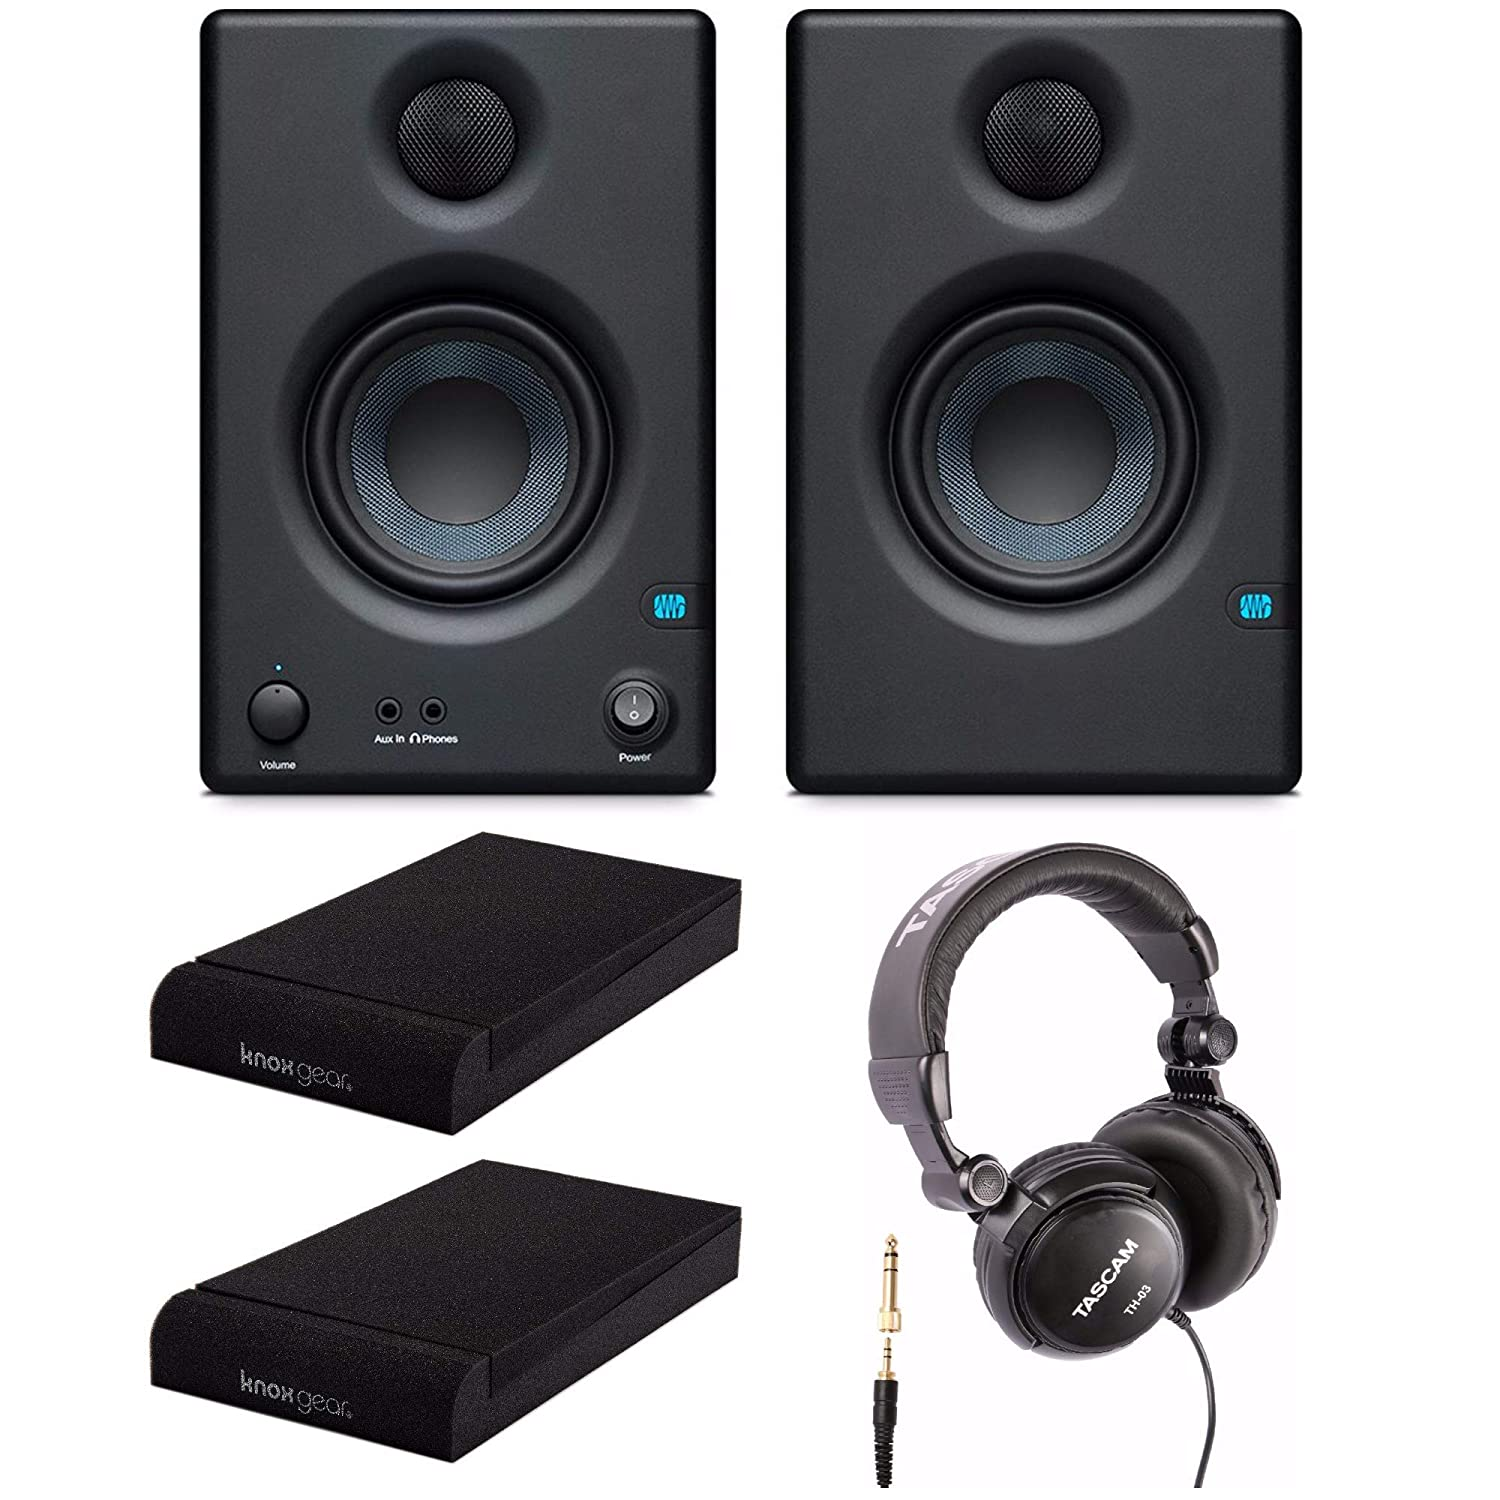 Presonus Eris-E3.5 Near Field Studio Monitor with Knox Gear Isolation Pads and Full-Sized Headphones